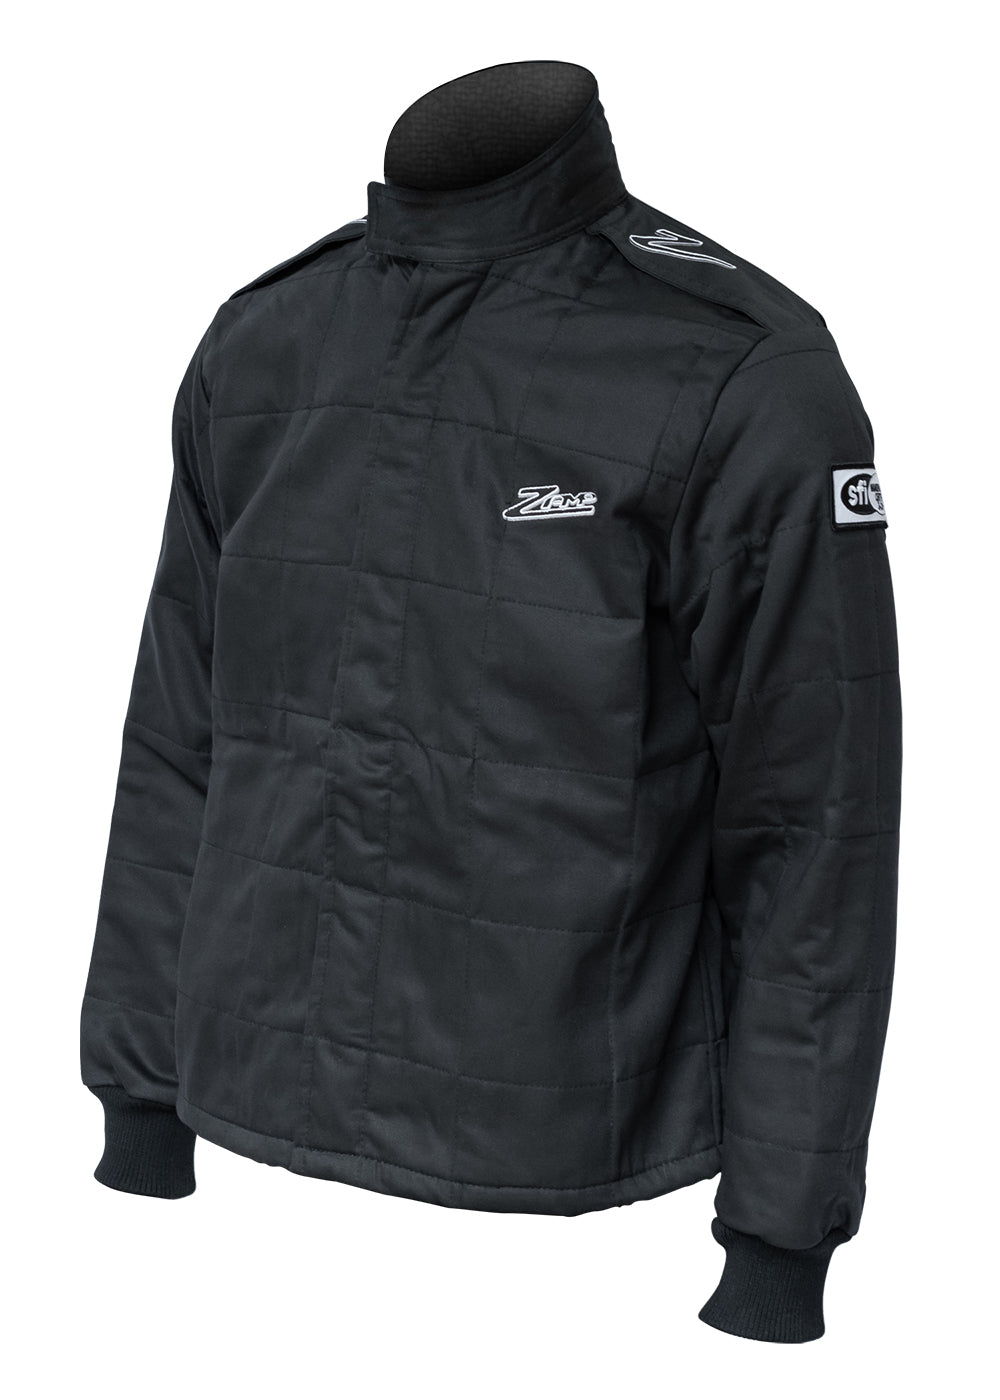 Zamp ZR-30 SFI 3.2A/5 Three Layer Race Jacket Gray or Black